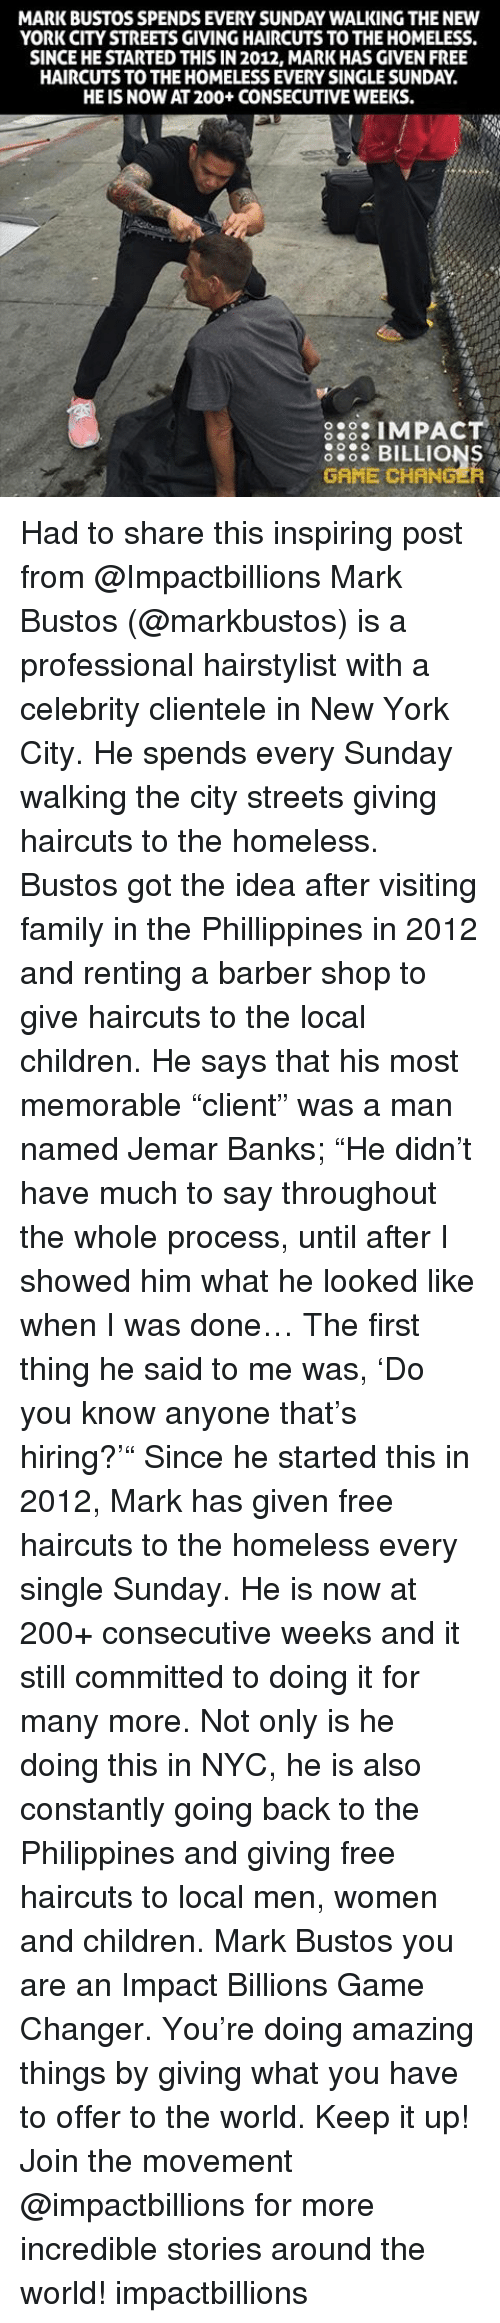 """Hairstylist: MARK BUSTOS SPENDS EVERY SUNDAY WALKING THE NEW  YORK CITY STREETS GIVINGHAIRCUTS TO THEHOMELESS.  SINCEHESTARTED THIS IN 2012, MARK HAS GIVEN FREE  HAIRCUTS TO THE HOMELESS EVERY SINGLESUNDAY  HE IS NOW AT200+ CONSECUTIVE WEEKS.  8:3: IMPACT  5868 BILLIONS  GAME CHANGER Had to share this inspiring post from @Impactbillions Mark Bustos (@markbustos) is a professional hairstylist with a celebrity clientele in New York City. He spends every Sunday walking the city streets giving haircuts to the homeless. Bustos got the idea after visiting family in the Phillippines in 2012 and renting a barber shop to give haircuts to the local children. He says that his most memorable """"client"""" was a man named Jemar Banks; """"He didn't have much to say throughout the whole process, until after I showed him what he looked like when I was done… The first thing he said to me was, 'Do you know anyone that's hiring?'"""" Since he started this in 2012, Mark has given free haircuts to the homeless every single Sunday. He is now at 200+ consecutive weeks and it still committed to doing it for many more. Not only is he doing this in NYC, he is also constantly going back to the Philippines and giving free haircuts to local men, women and children. Mark Bustos you are an Impact Billions Game Changer. You're doing amazing things by giving what you have to offer to the world. Keep it up! Join the movement @impactbillions for more incredible stories around the world! impactbillions"""